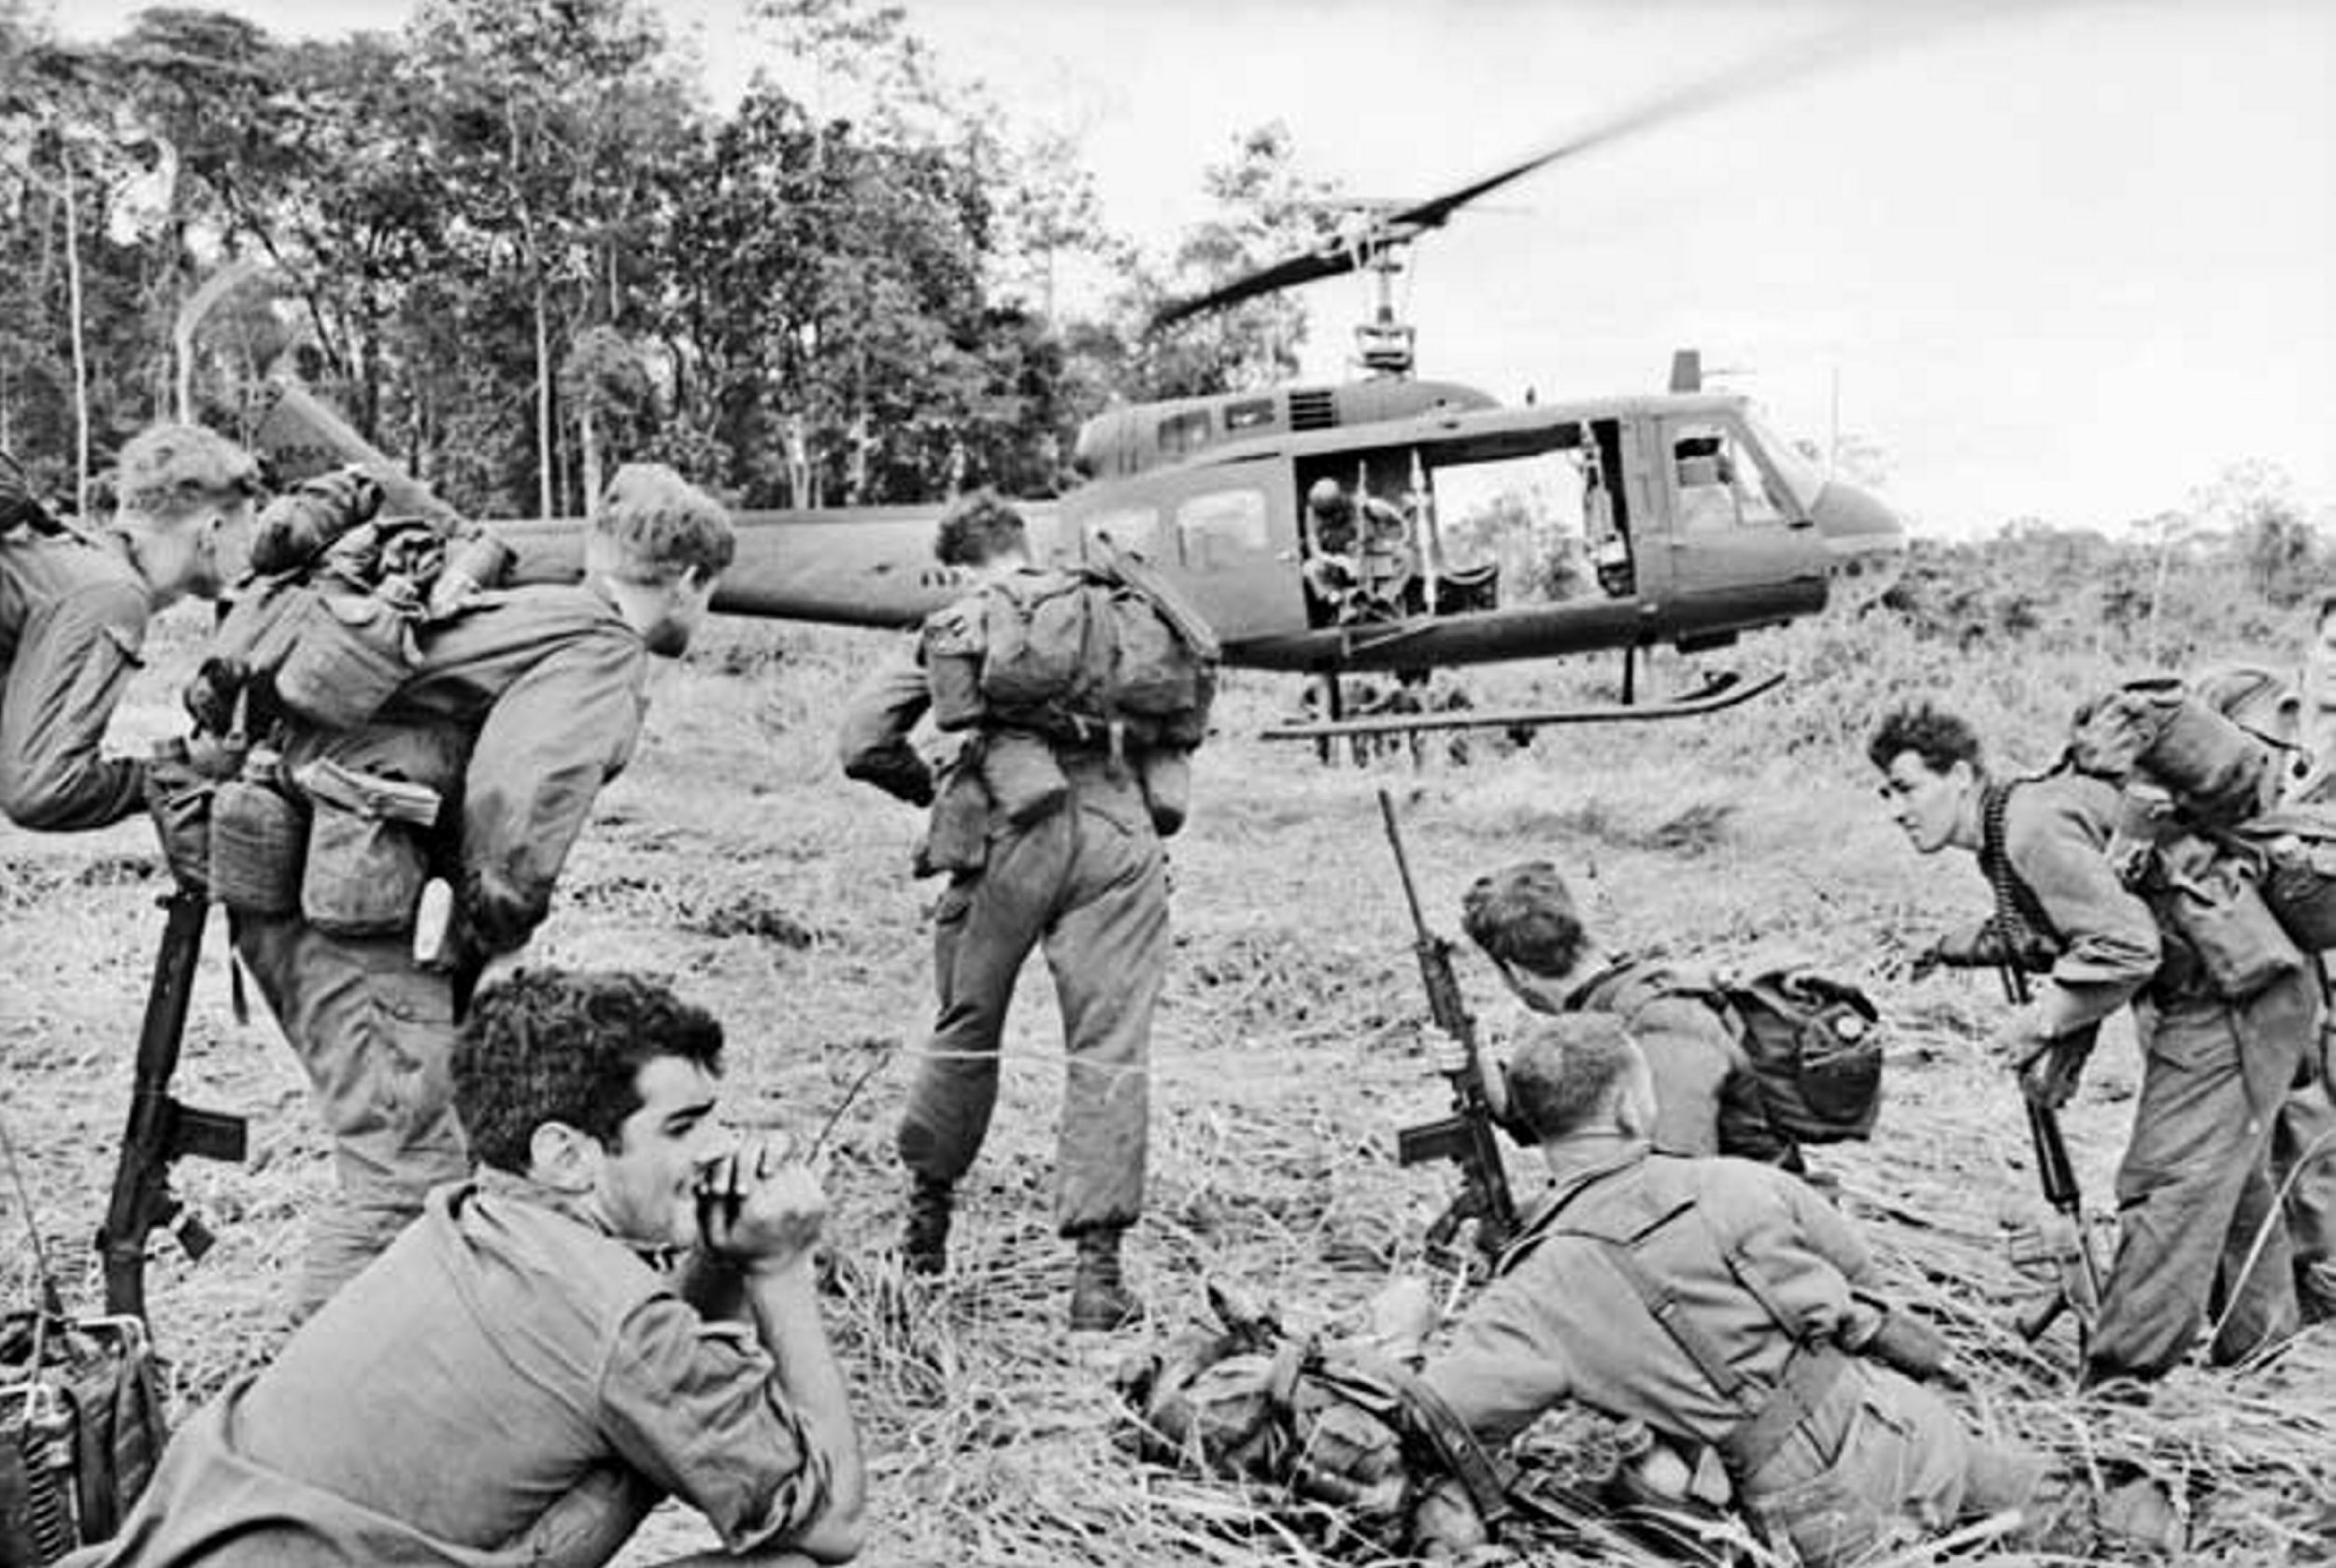 vietnam war between the north and south history essay Vietnam war was a cold war military conflict that occurred in vietnam, laos, and cambodia from november 1, , to april 30, 1975 when saigon fell this war followed the first indochina war and was fought between north vietnam, supported by its communist allies, and the government of south vietnam, sup.